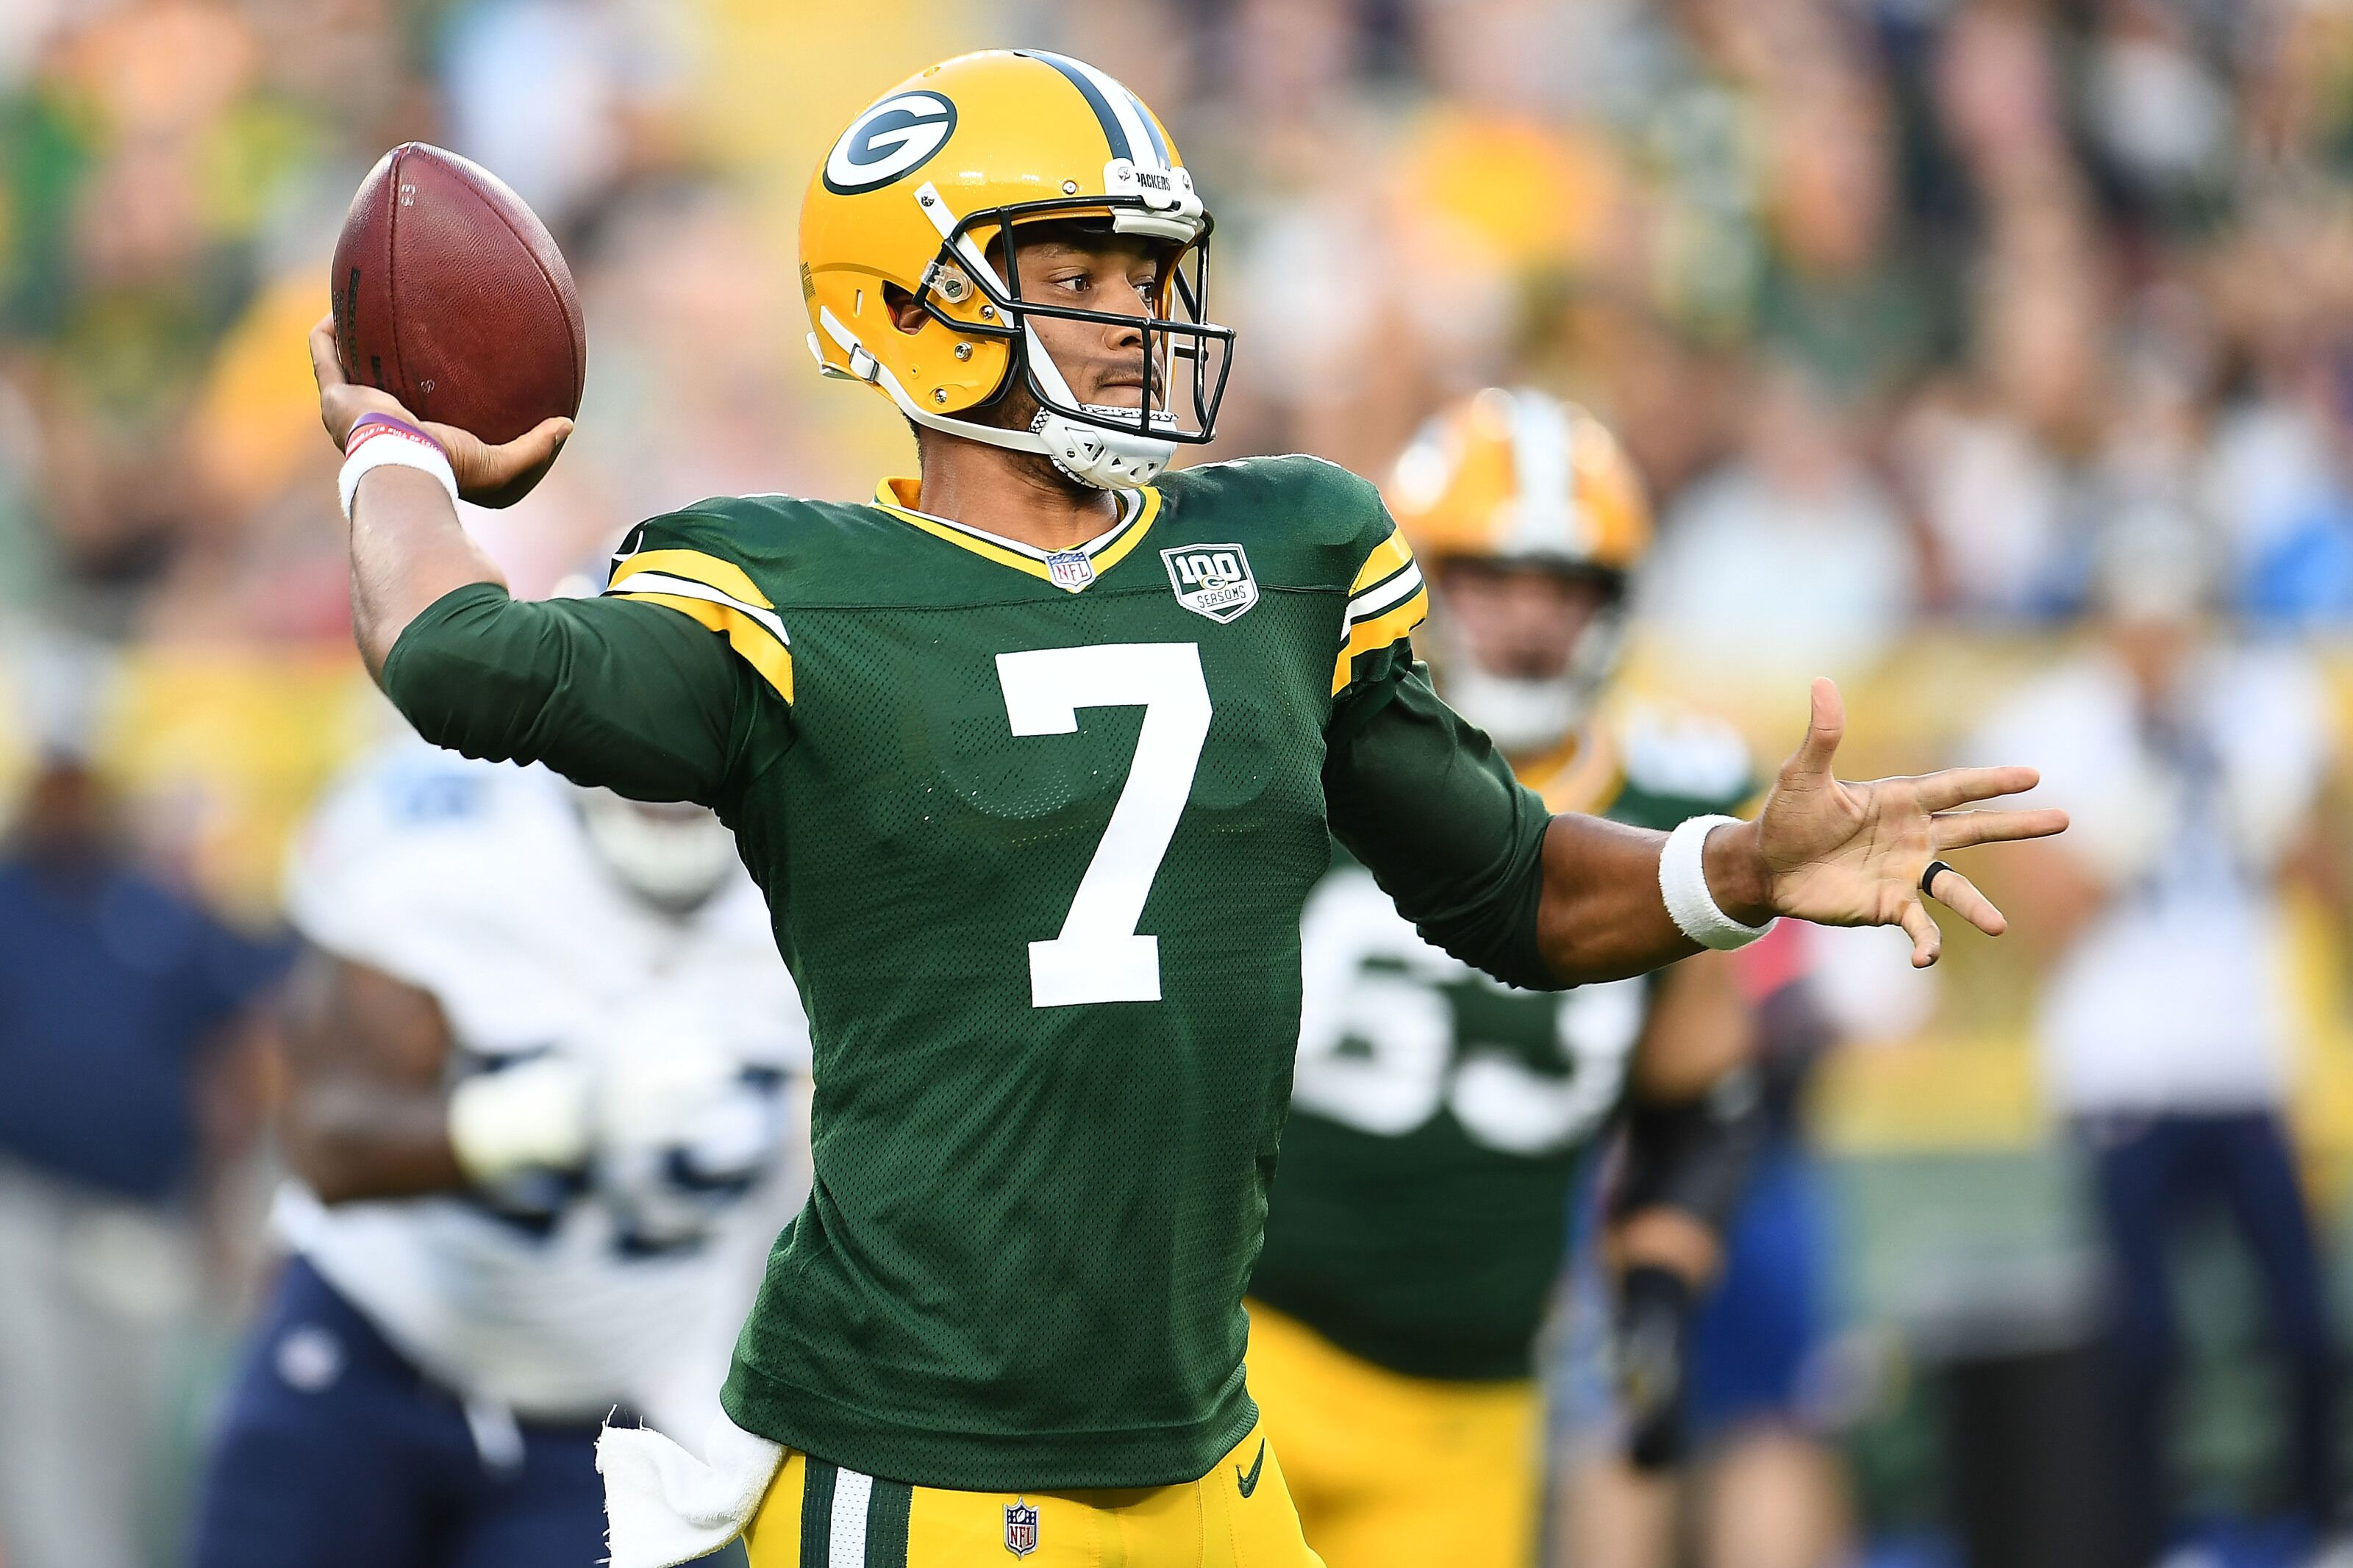 brand new 70edb 4052c Packers topple Titans in exciting preseason opener